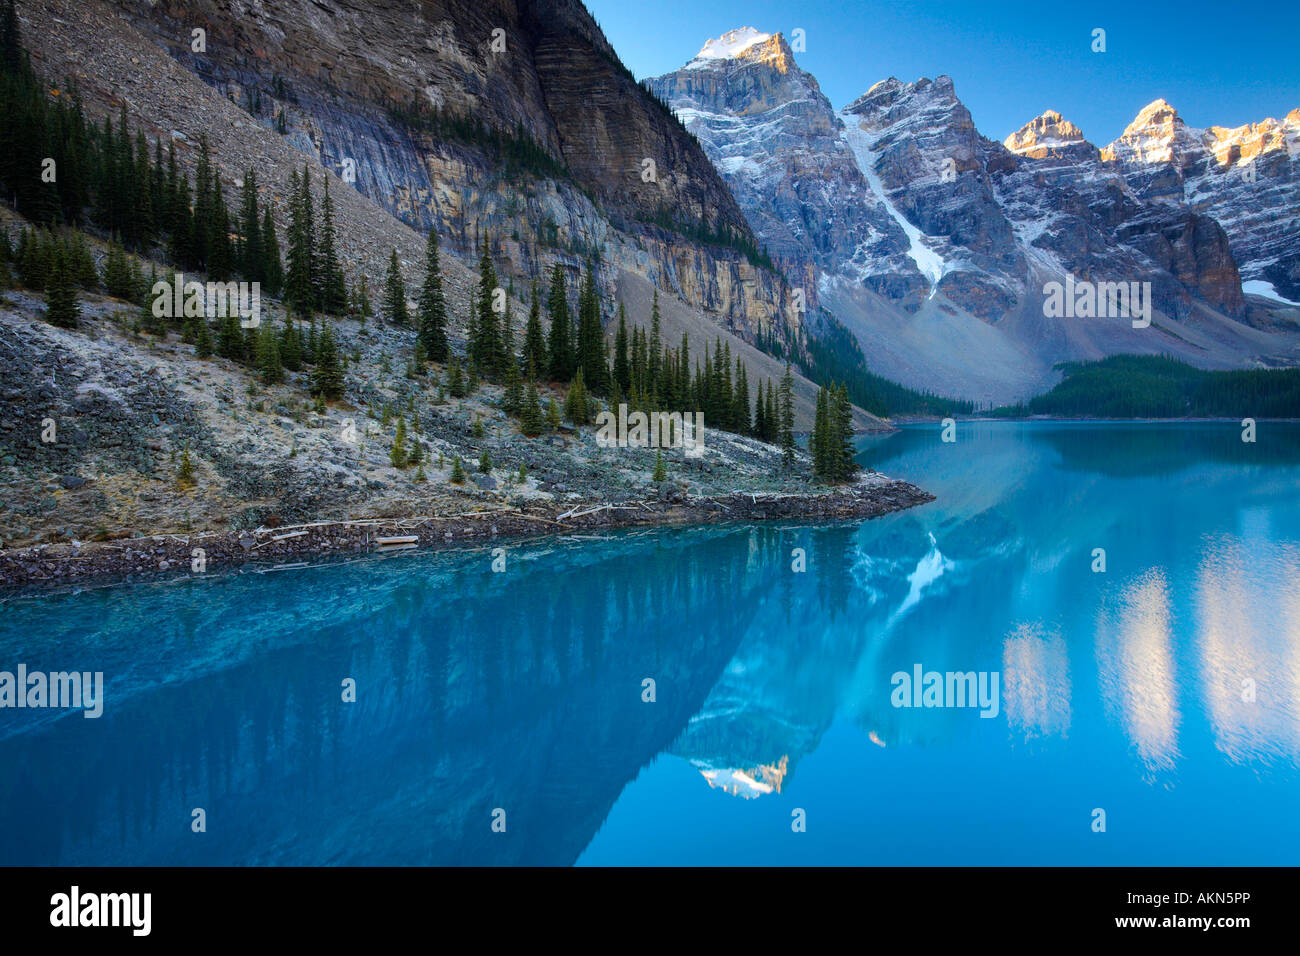 Spectacular blue waters at Moraine Lake in Banff National Park, Canada - Stock Image